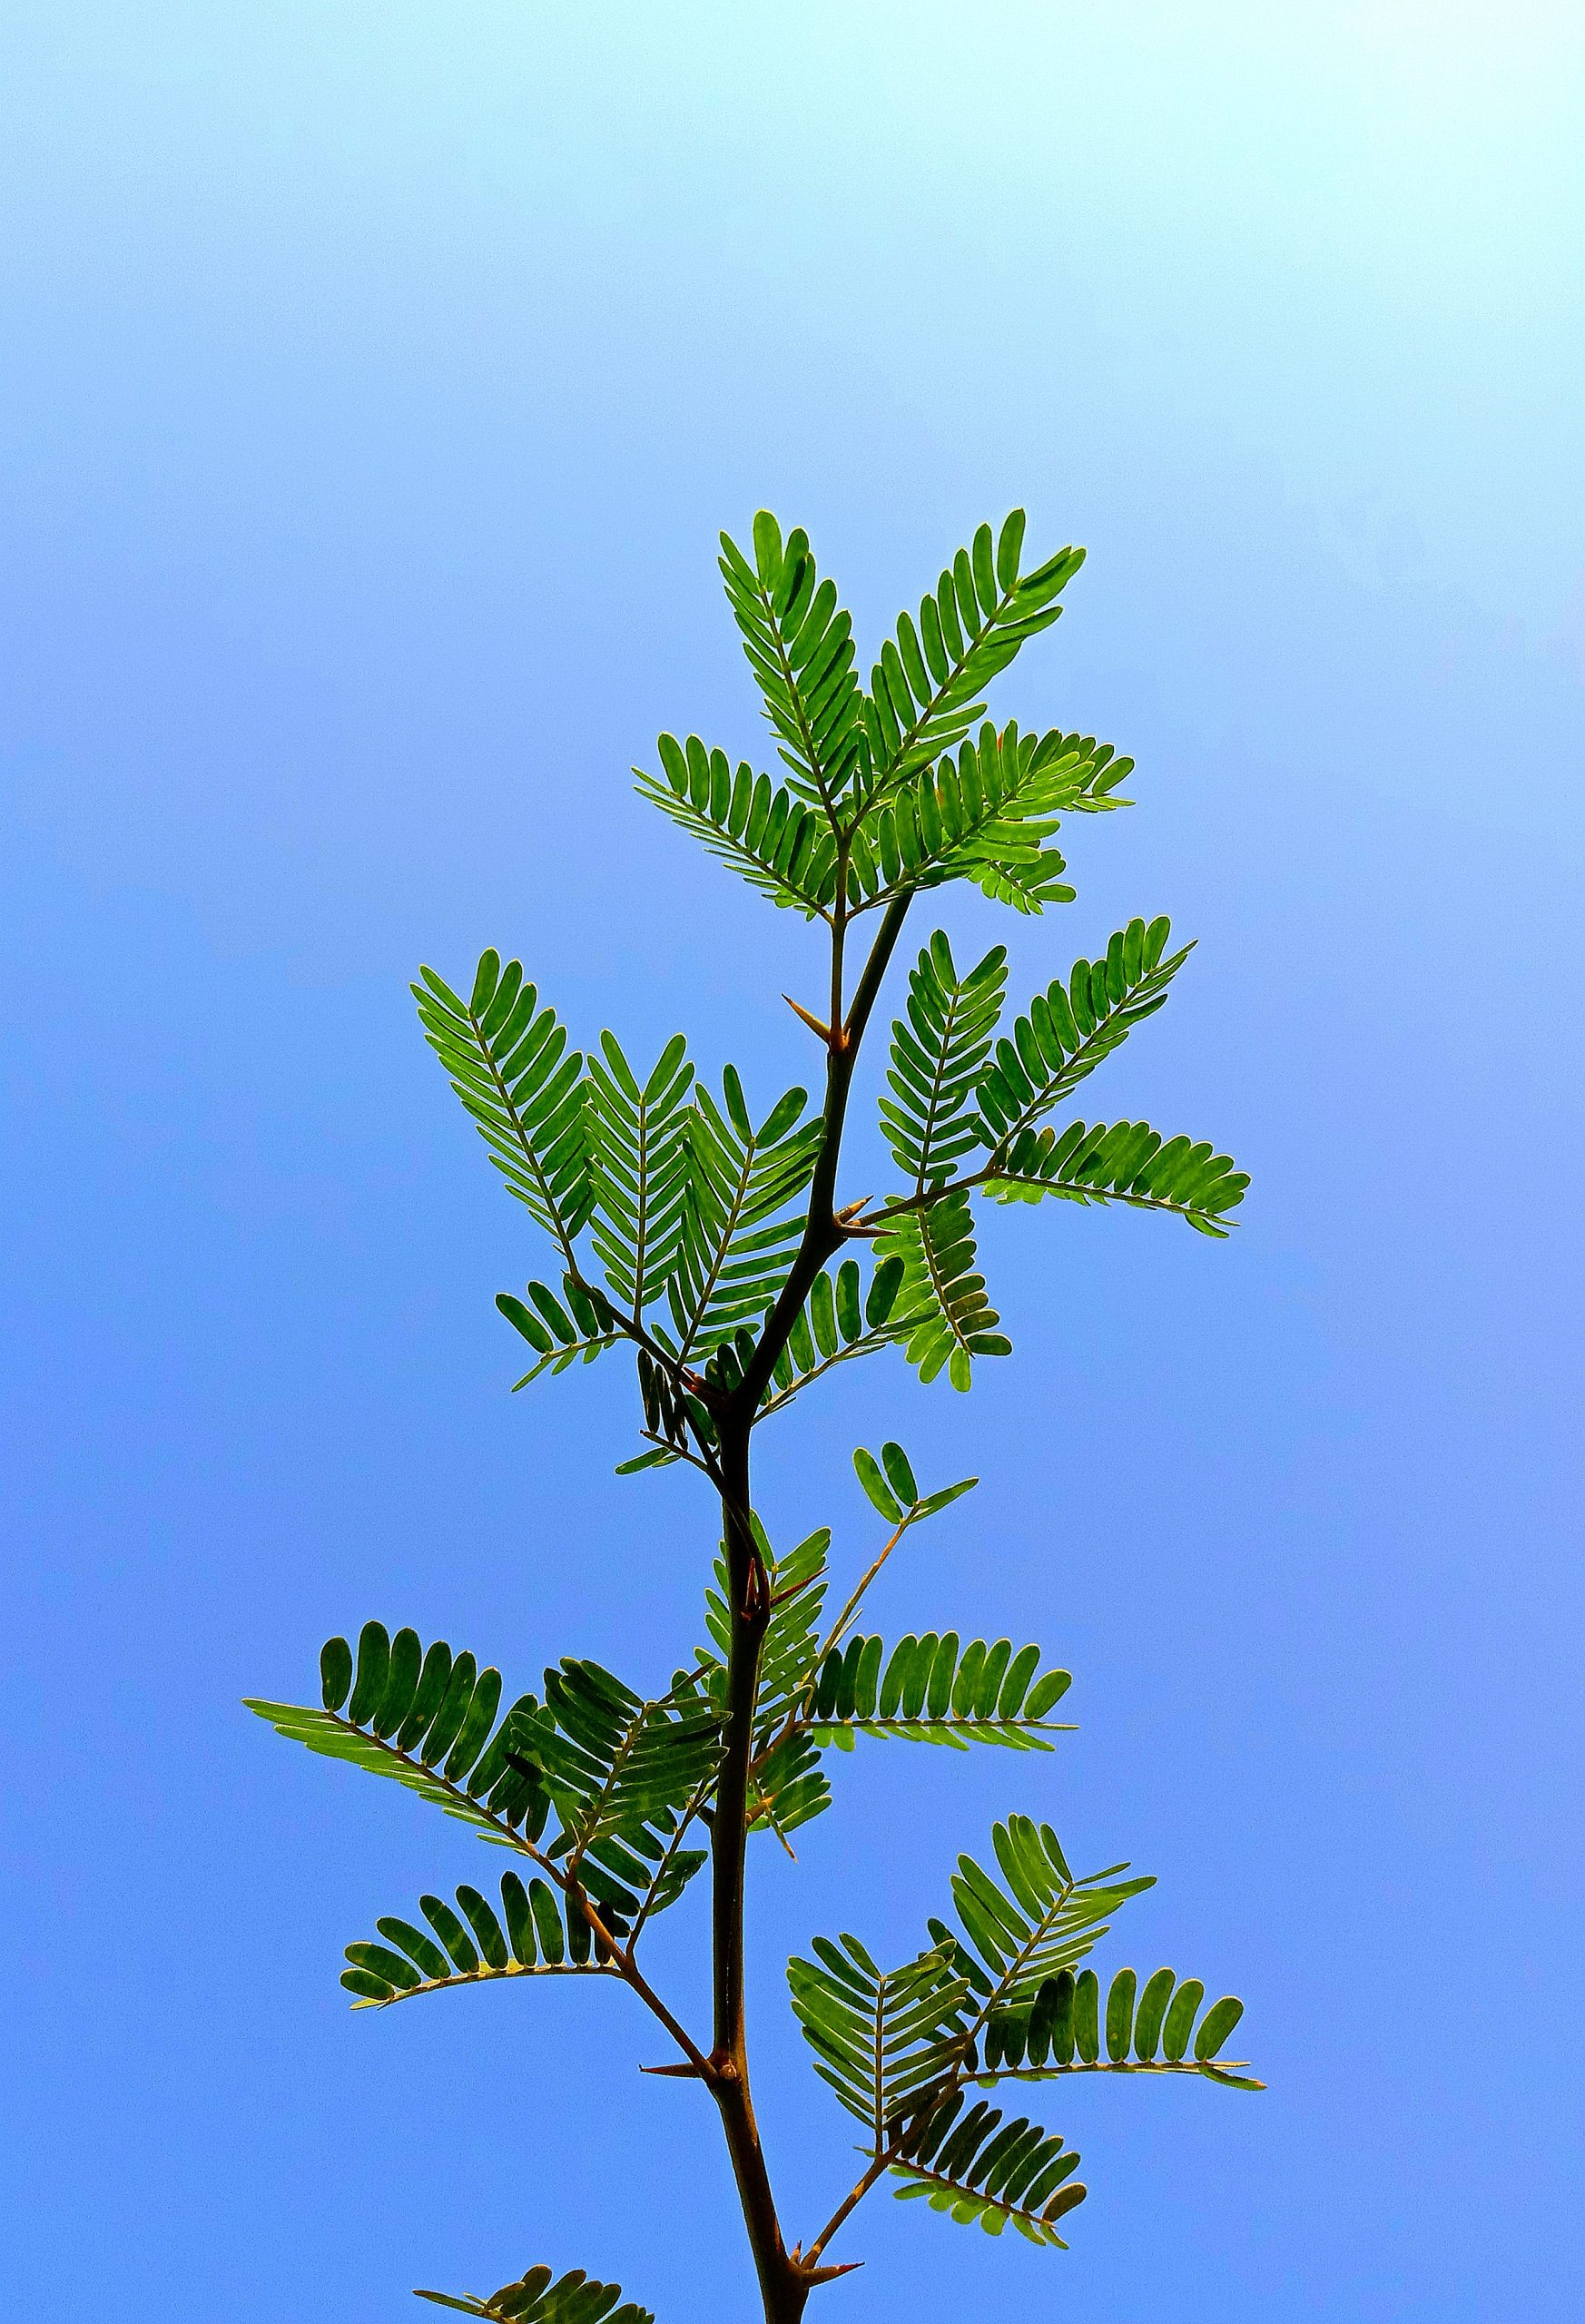 Plant under clear sky